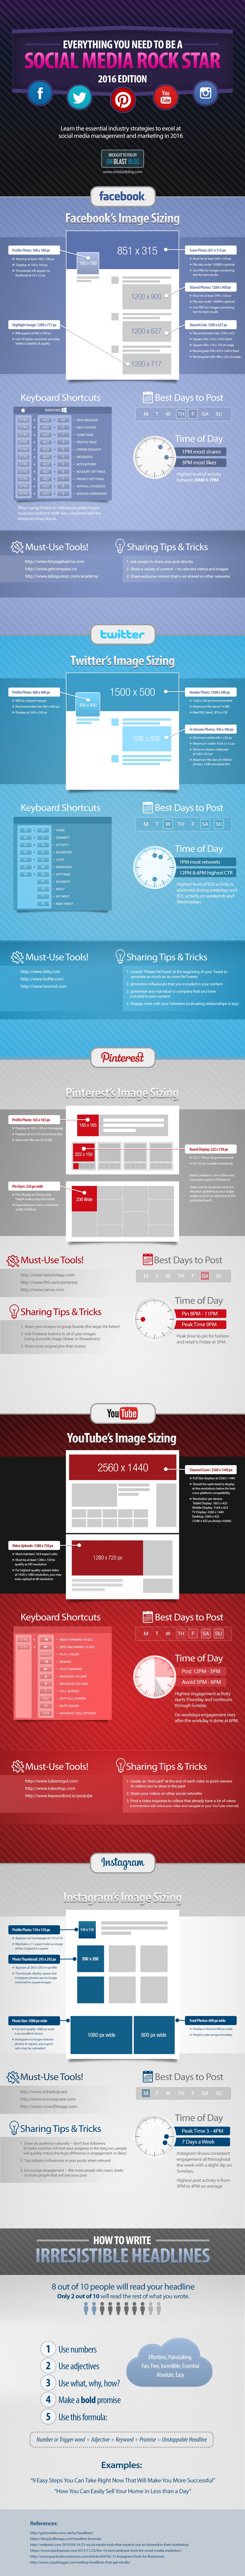 social media marketing for business, social media, social media marketing, SMM, social business, content, visual content, infographic, top tips, social media top tips, benefits of social media marketing, social media strategy, social media planning, social media hacks, social media cheat sheet, social media image sizing, social media image sizing cheat sheet